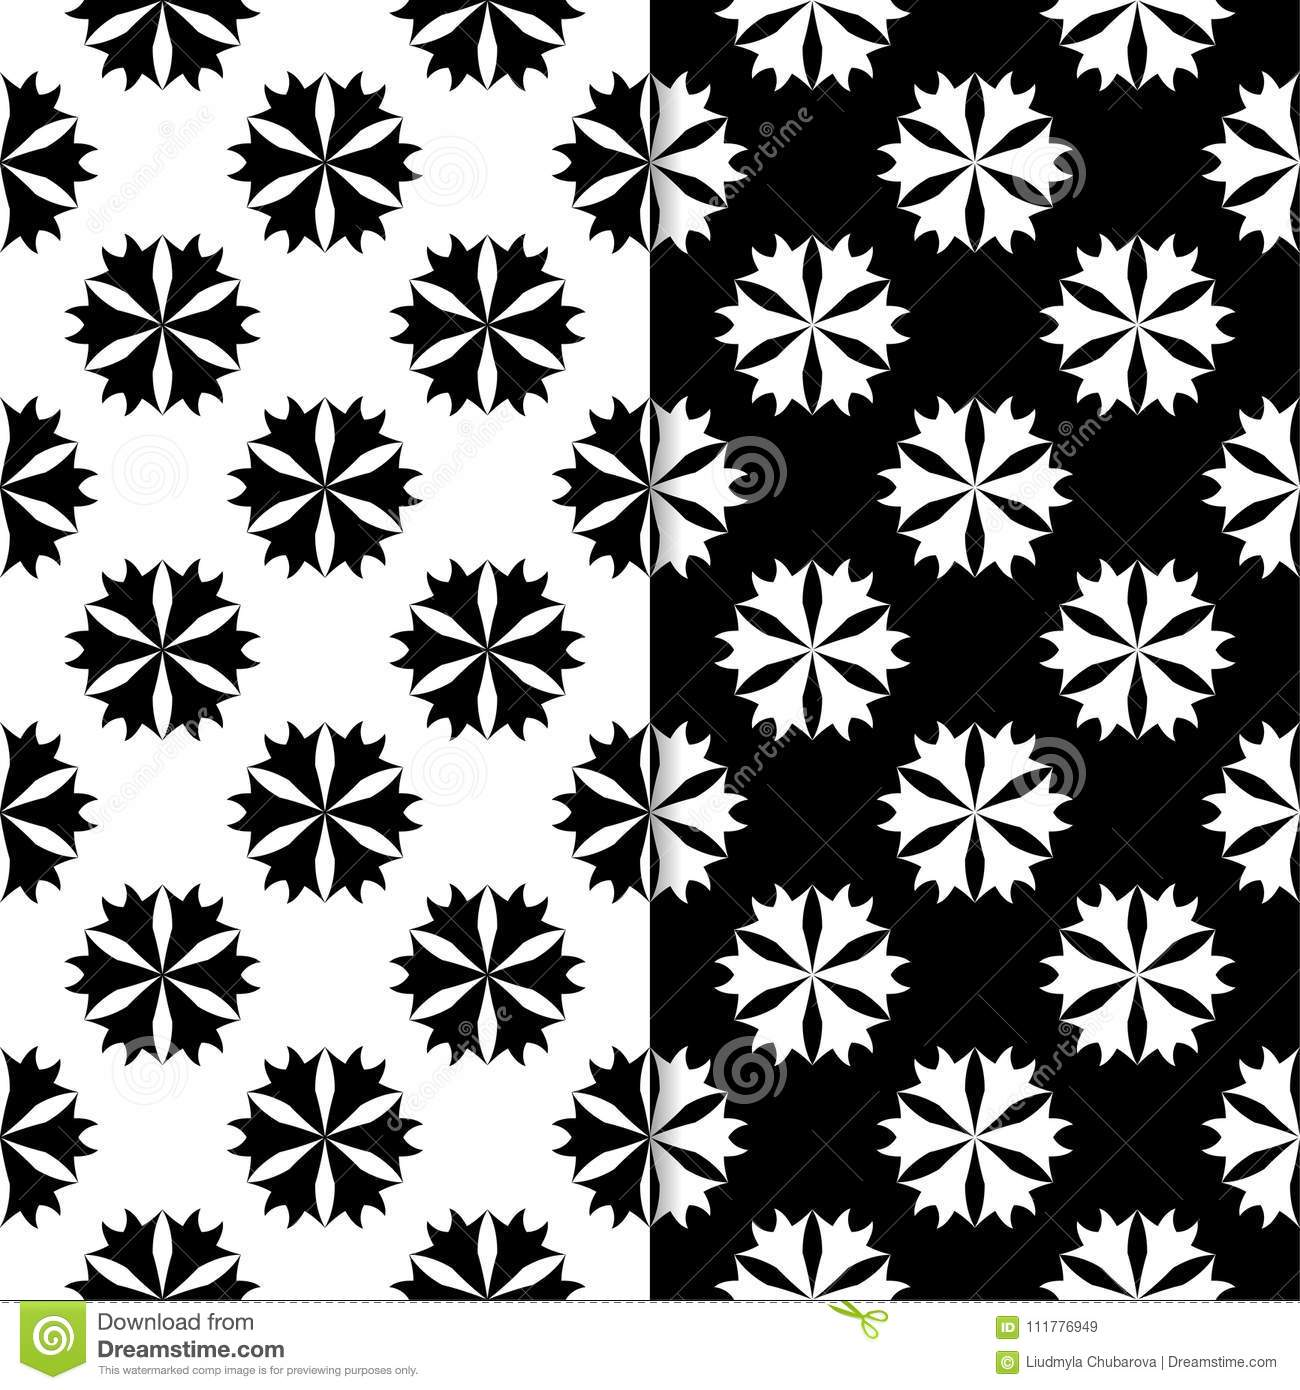 Black and white floral seamless patterns. Set of backgrounds